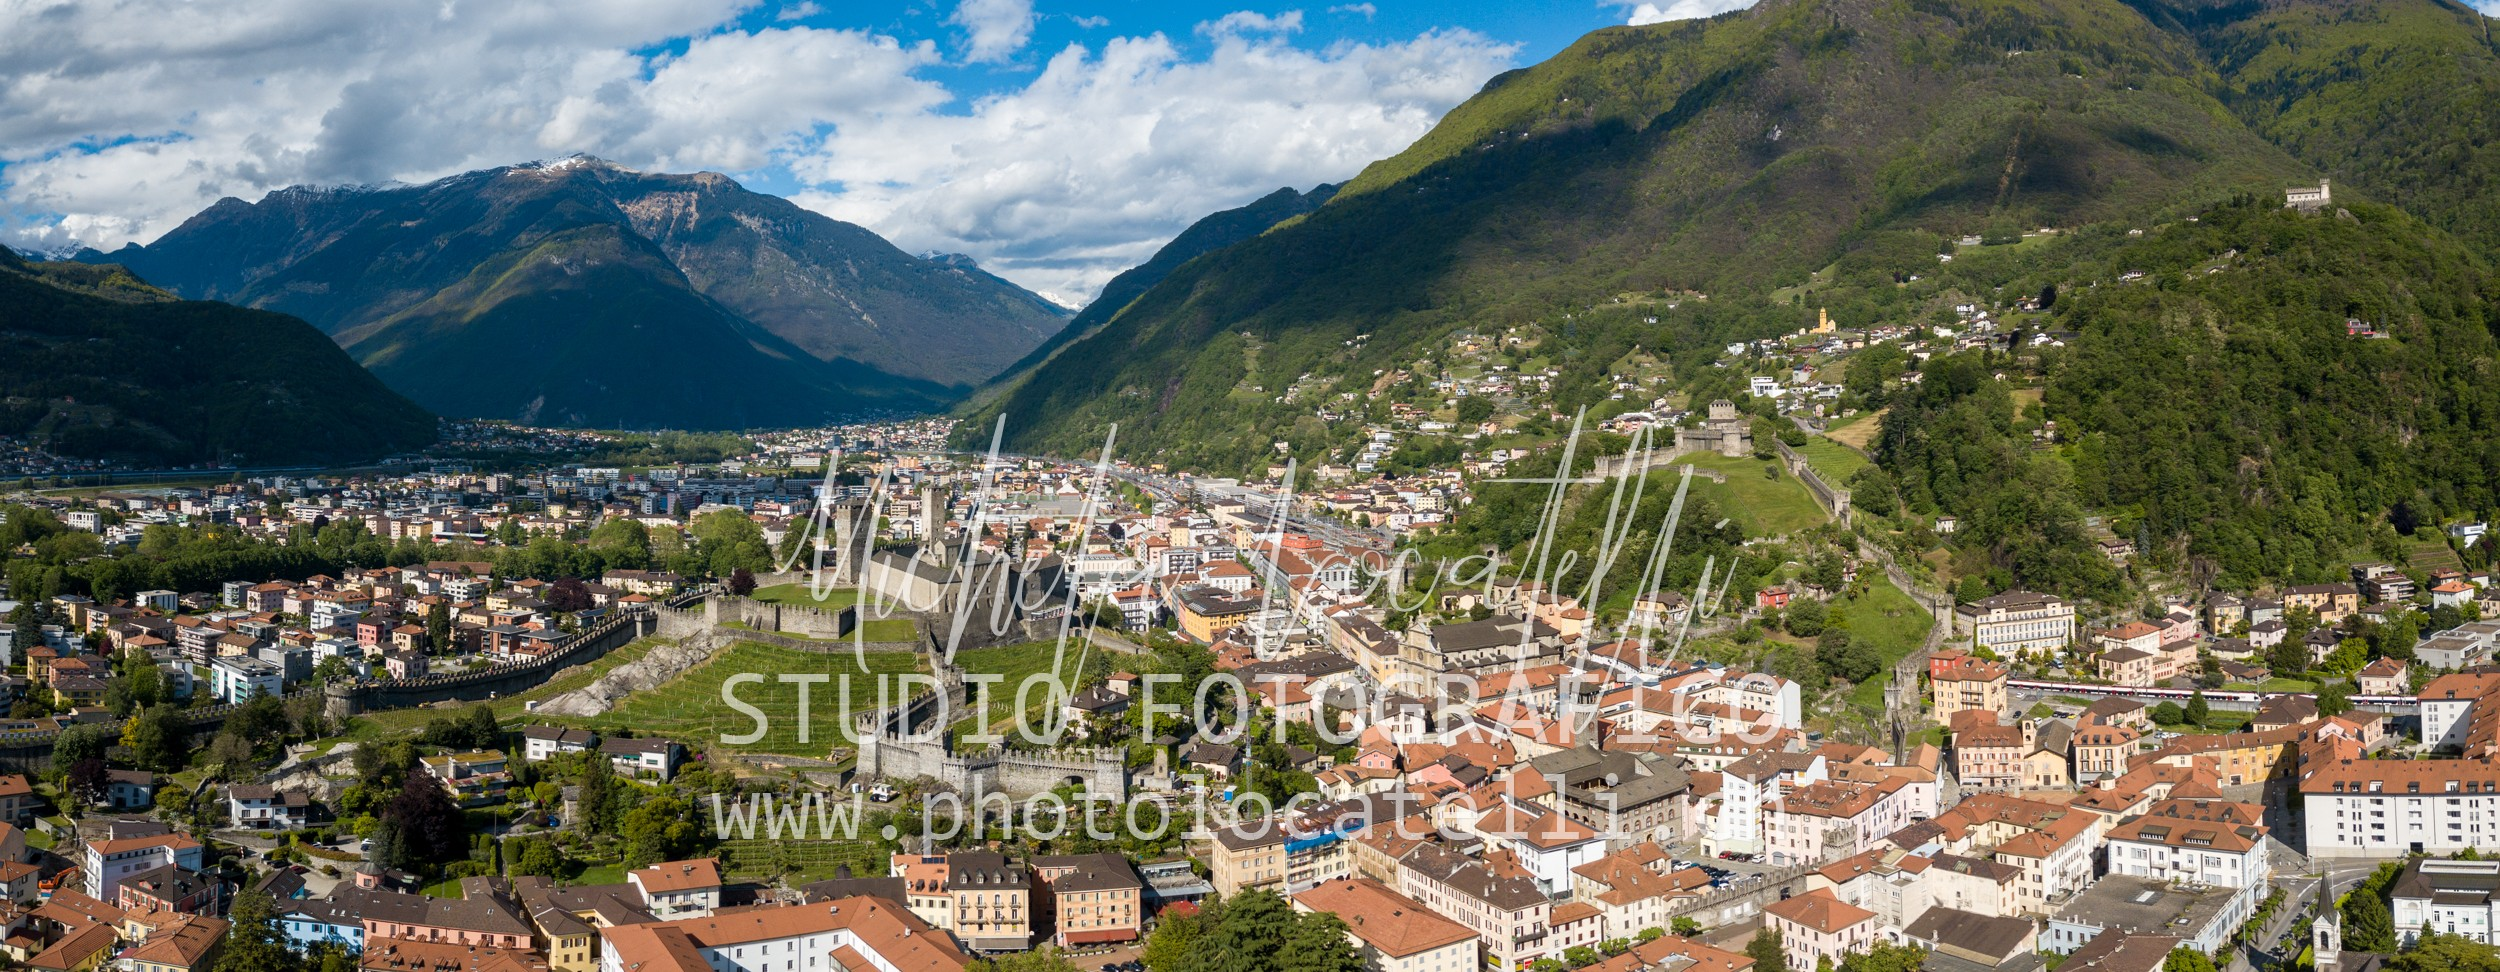 Bellinzona 2019,Bellinzona,Bellinzonese,Landscape,Places,Schweiz,Switzerland,città,city,drone,michela@photolocatelli.ch,paesaggio,photolocatelli.ch,svizzera,swiss,ticino,ticino turismo,